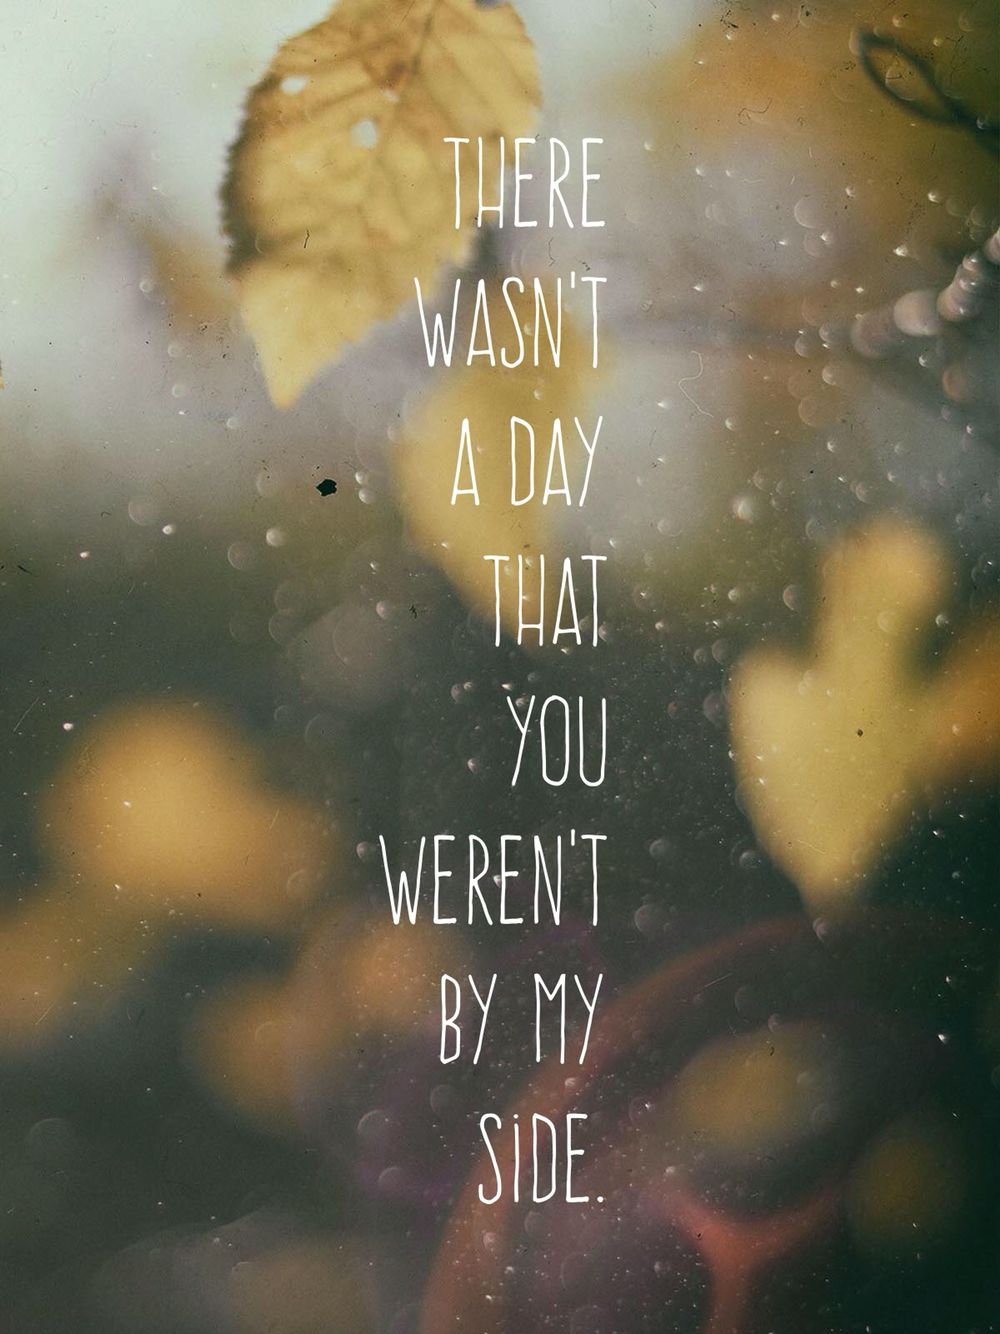 There Wasn T A Day That You Weren T By My Side Bethel Music Lyrics